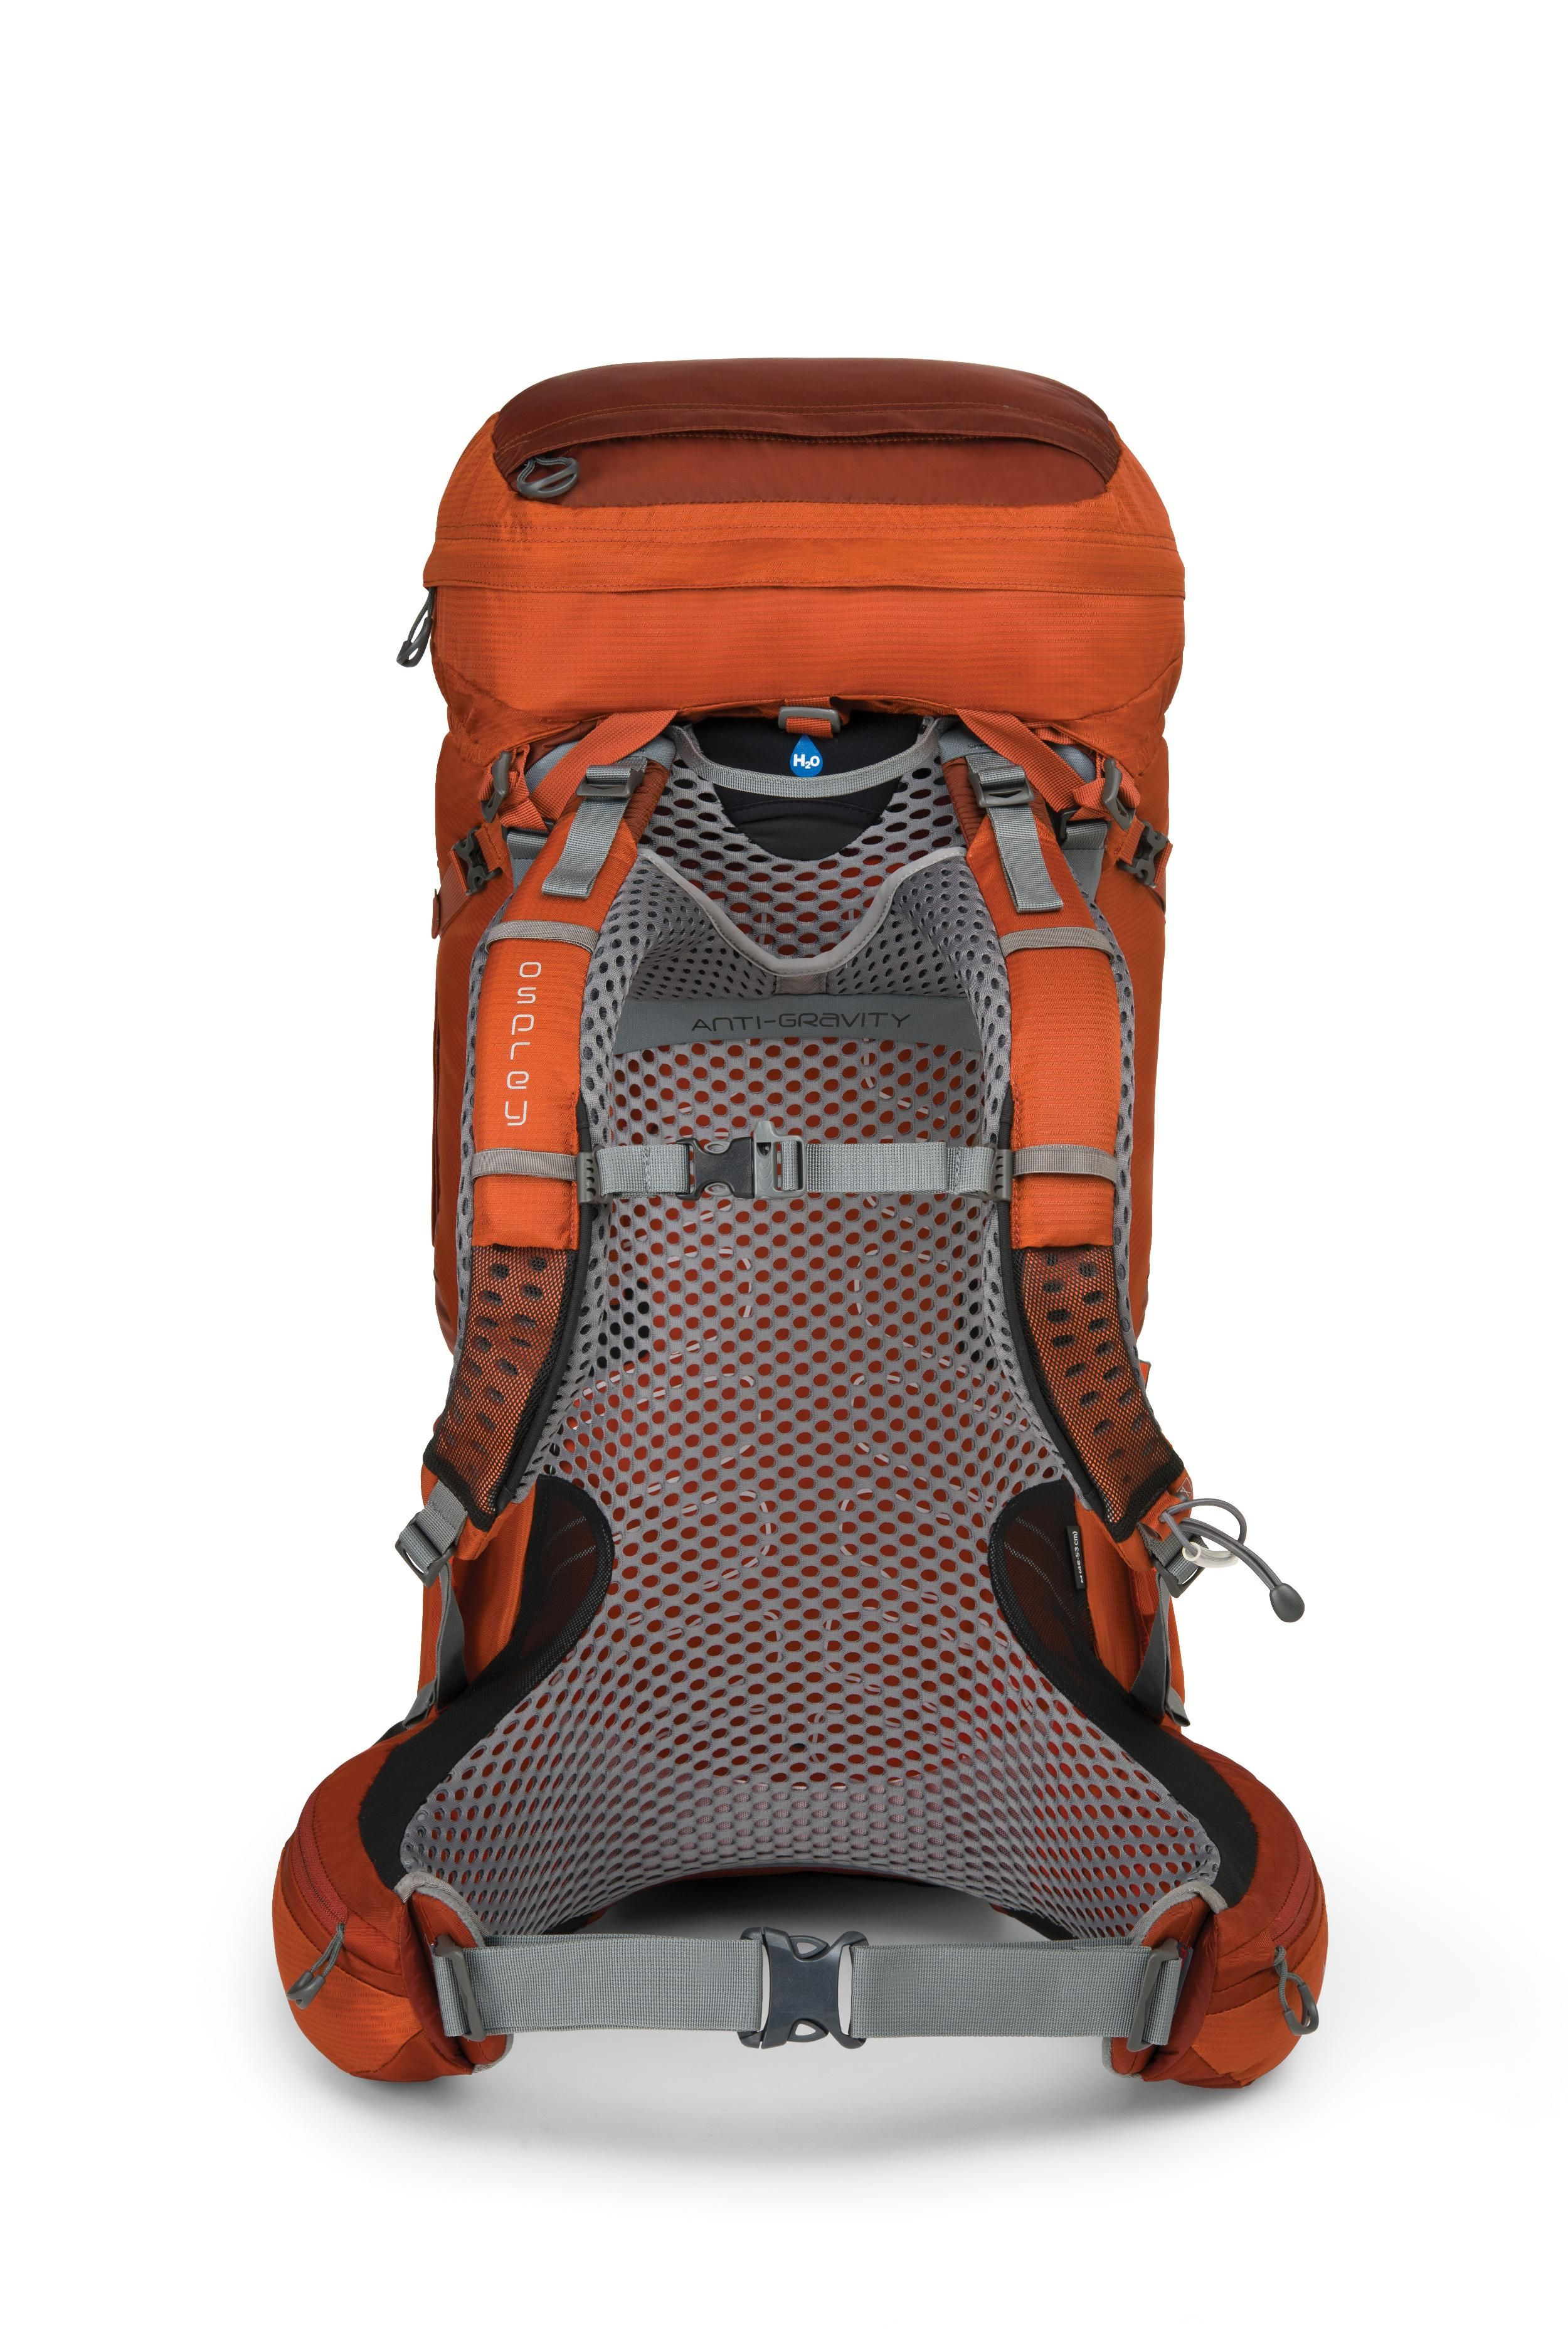 Starting with a dreamlike Osprey suspension, this multiday pack carries gear easily in 9 external pockets, enhancing mobility and comfort while toting heavier loads through the backcountry.